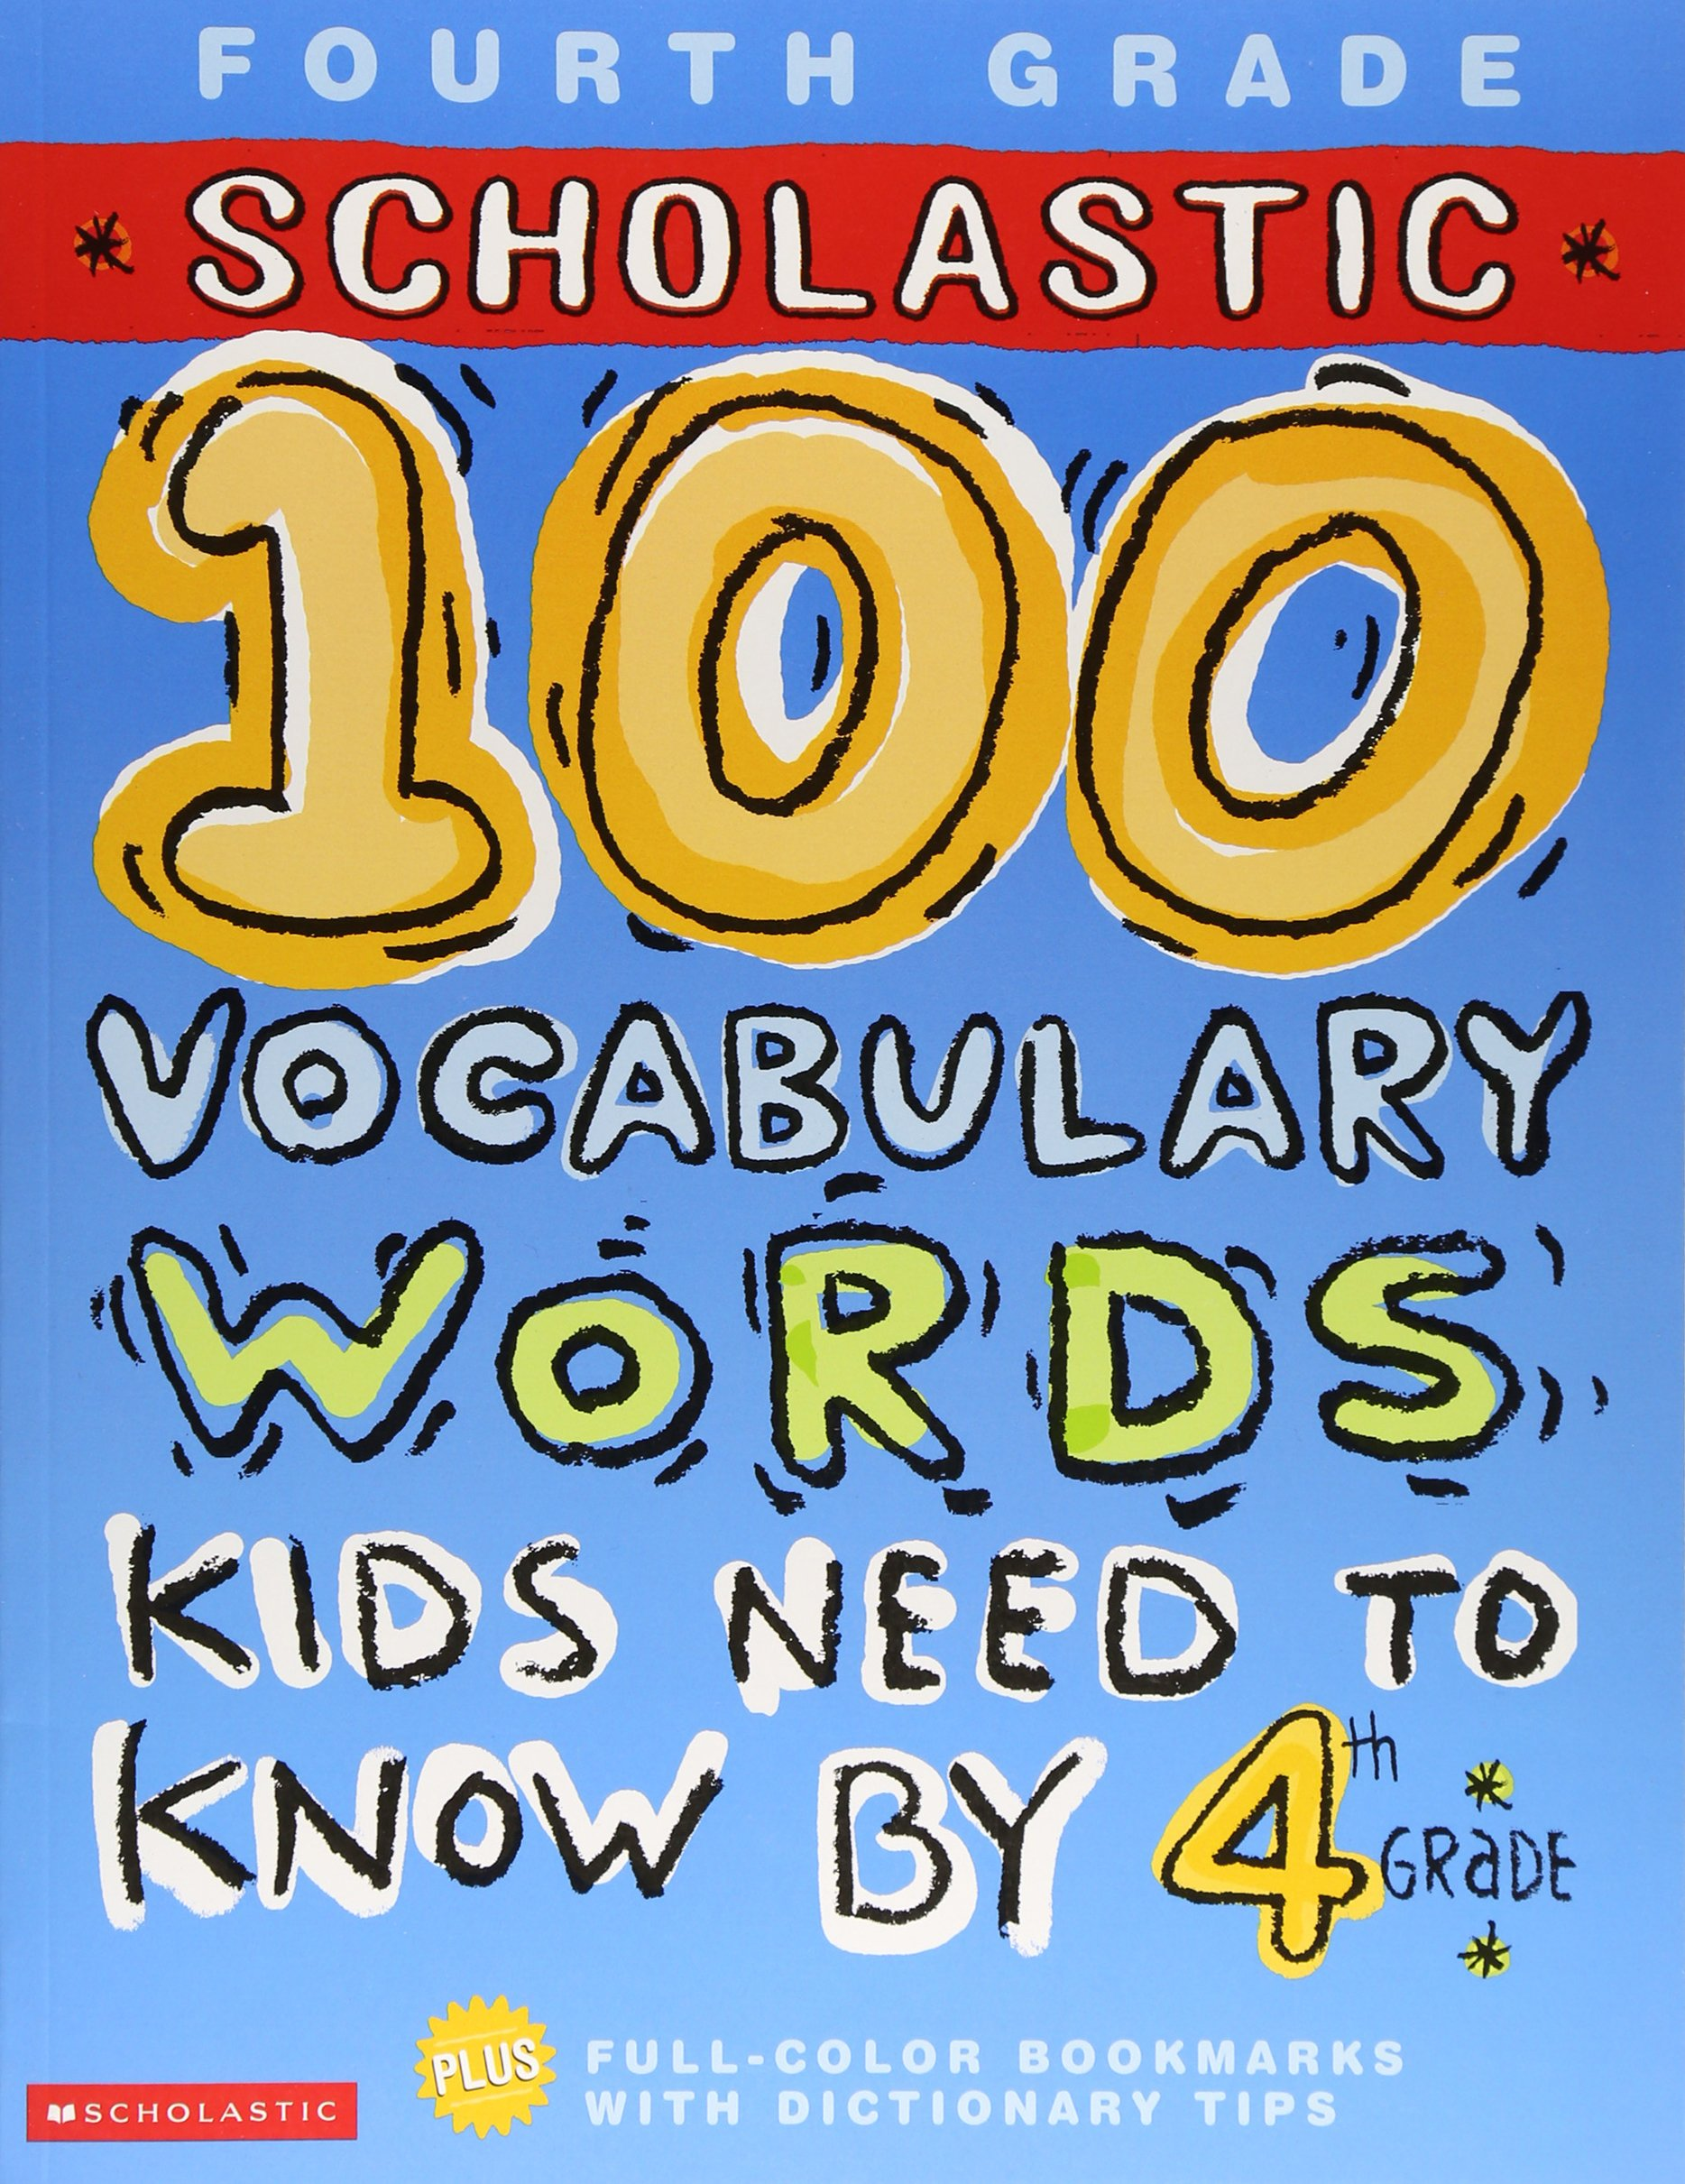 Amazon.com: 100 Vocabulary Words Kids Need to Know by 4th Grade (Workbook) (100  Words Math Workbook) (9780439566766): Gail Herman, Kama Einhorn: Books